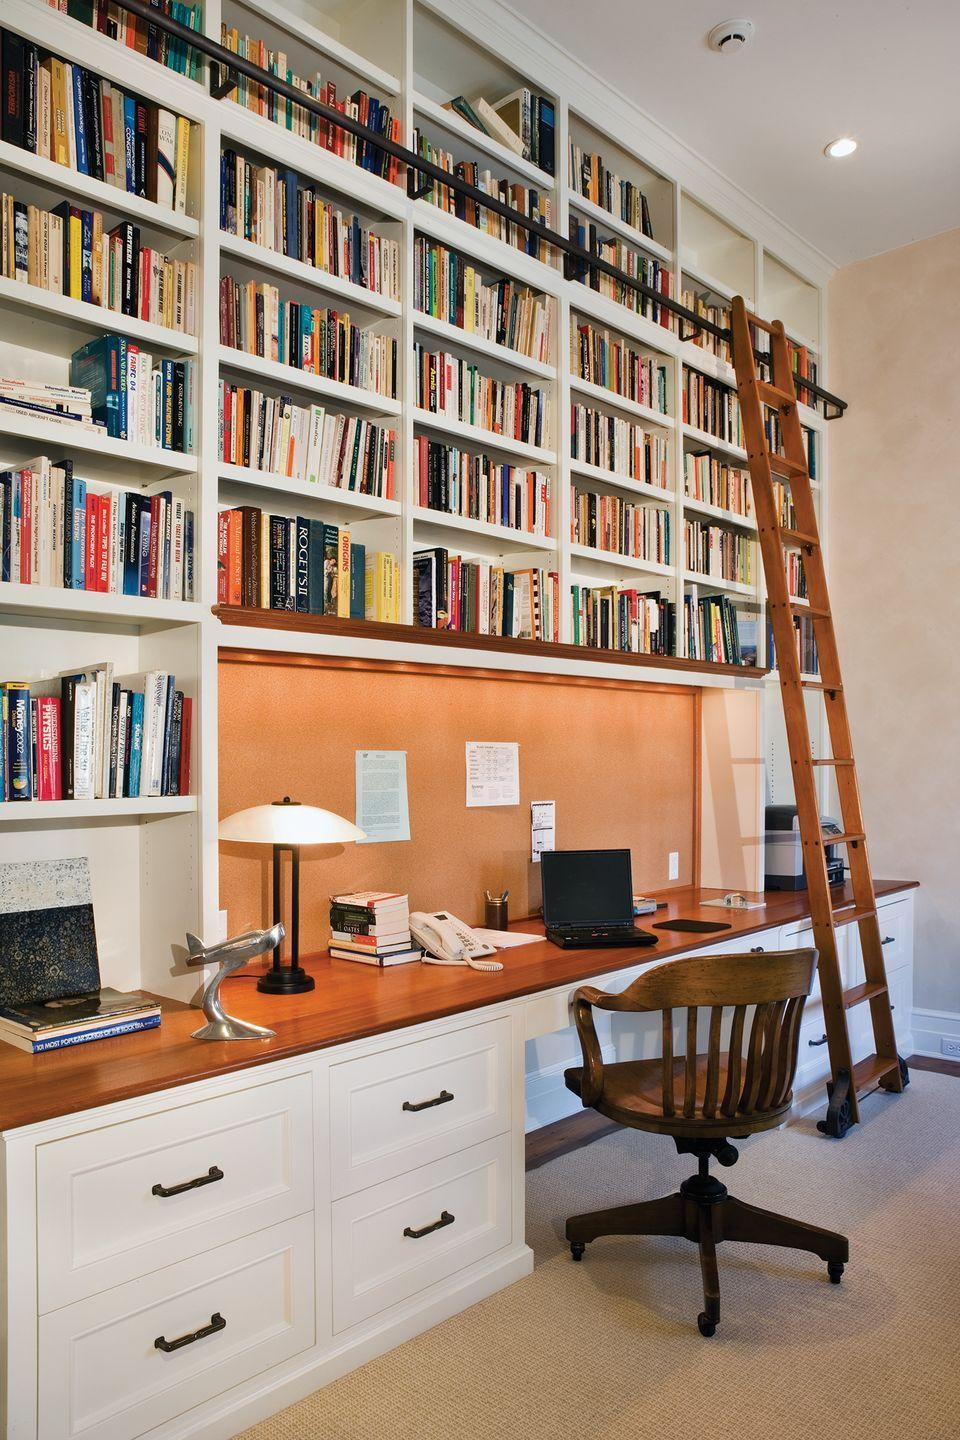 <p>There's no reason why your desk shouldn't be a part of your home library. Incorporate a smart design right into your built-in bookshelves to maximize space.</p>